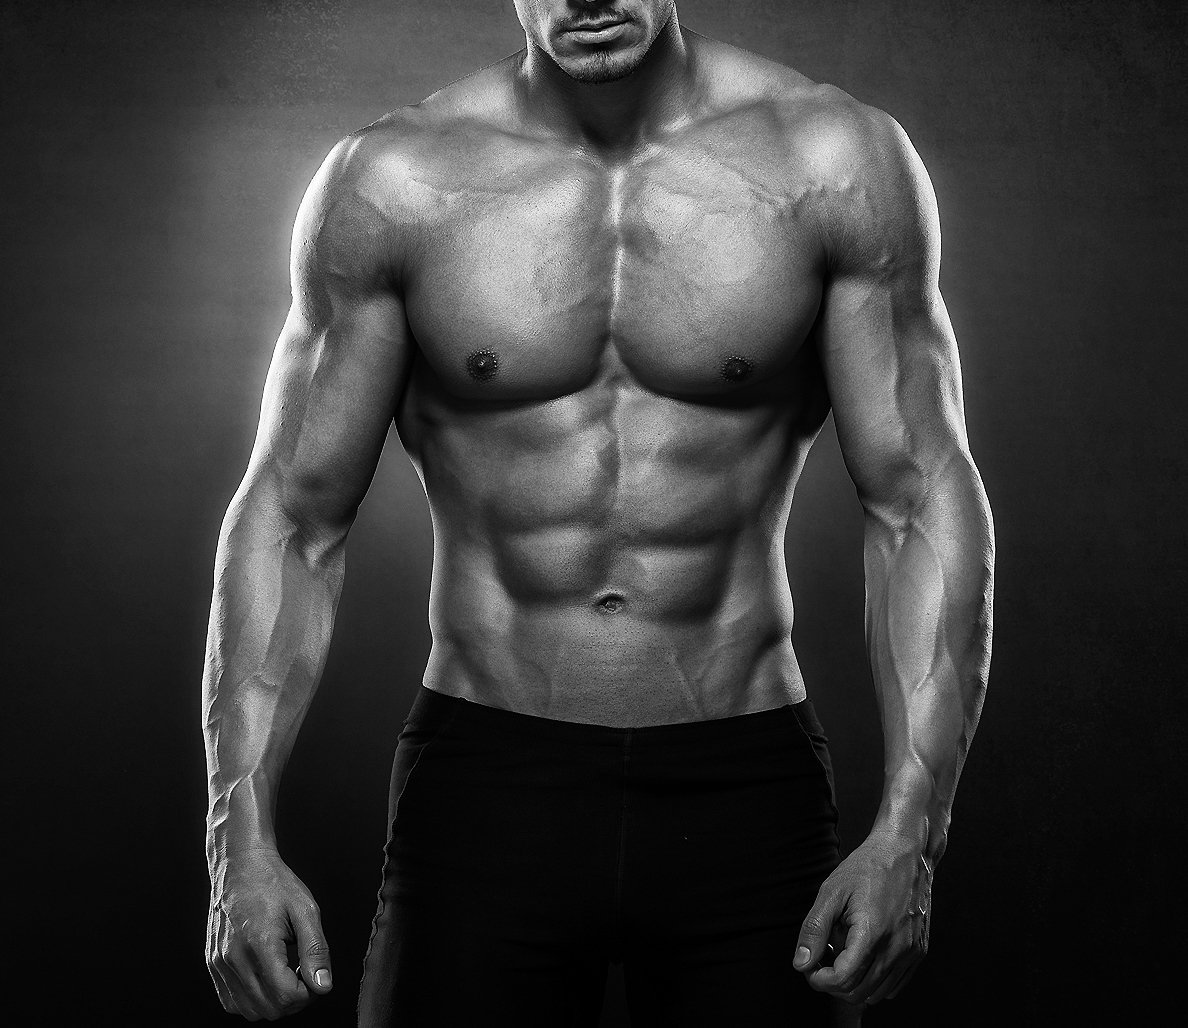 Men With Strong Muscular Toned Body Are The Most Attractive